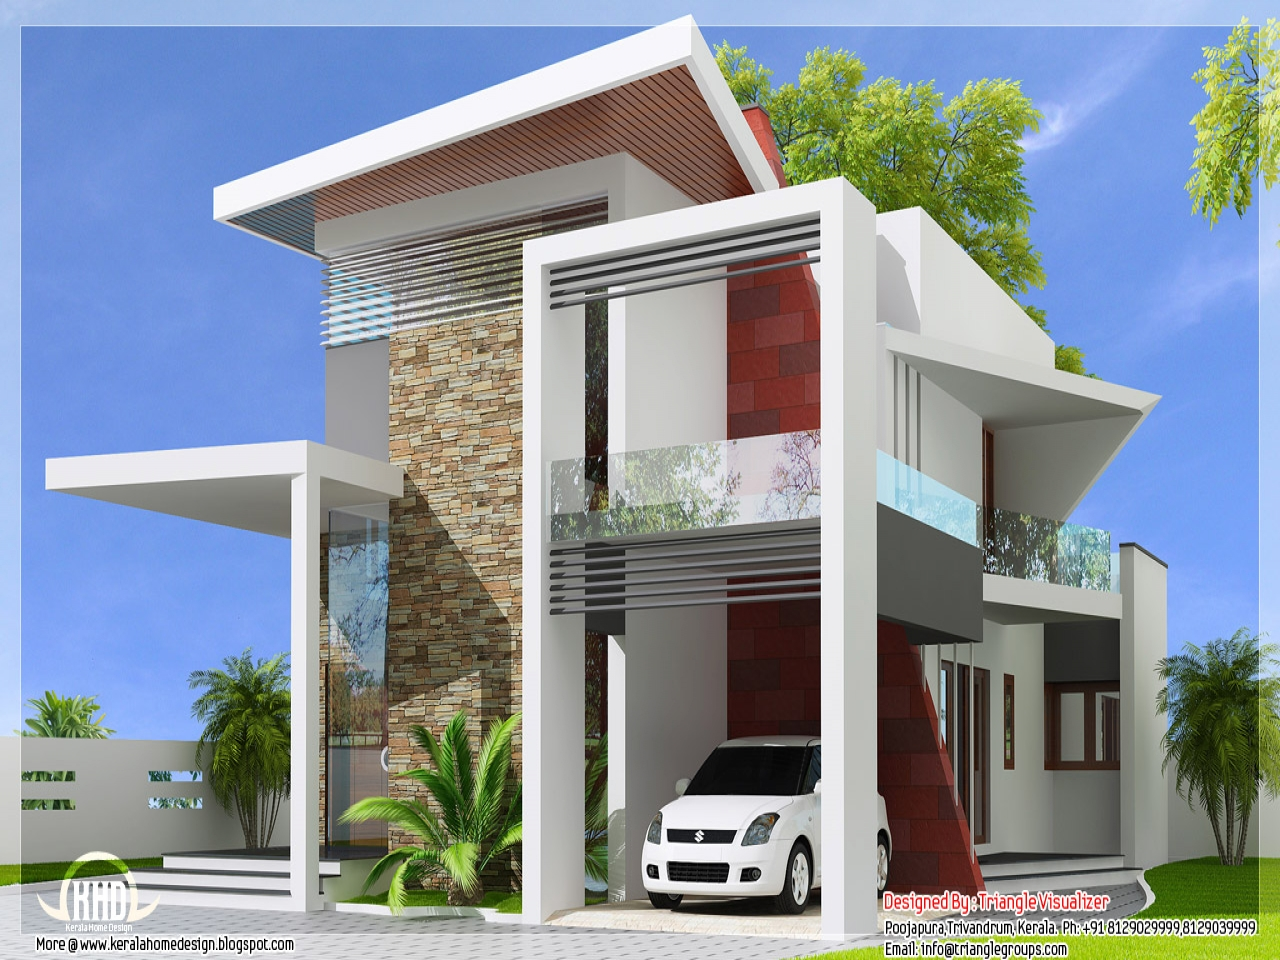 Small House Elevation Designs : Elevation views of houses modern house designs